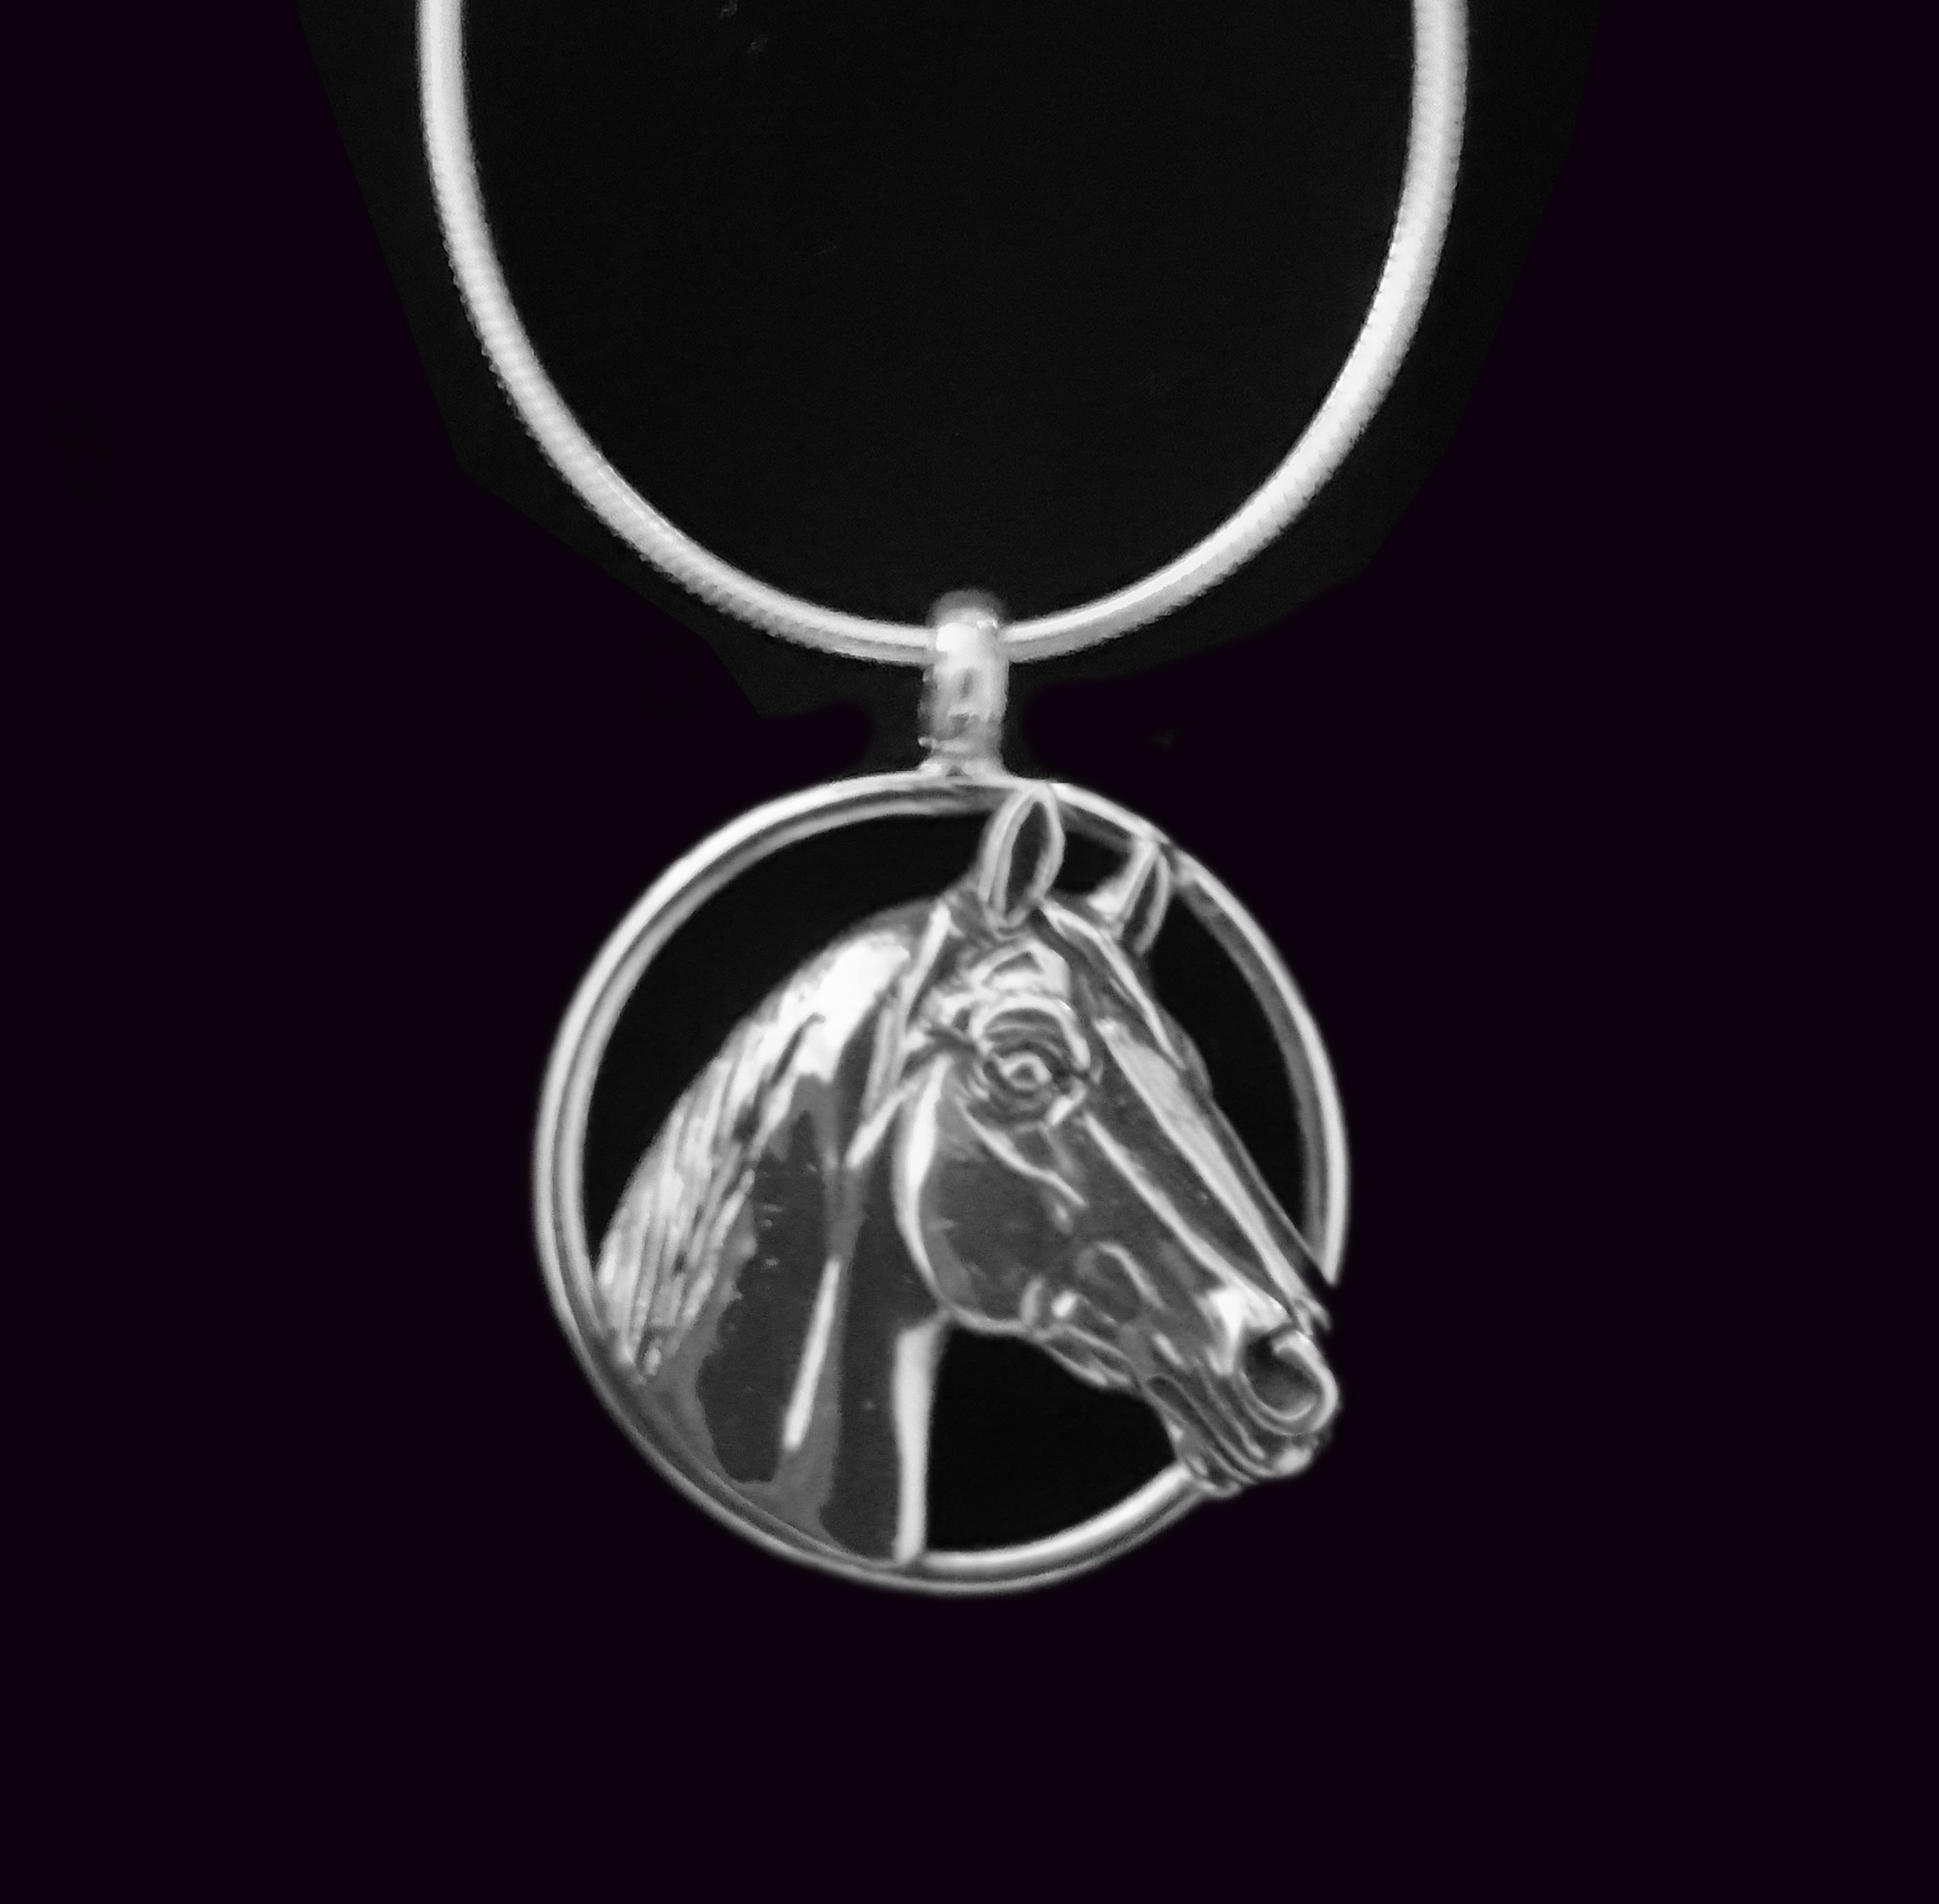 horse j gemma sterling in necklace from the silver jumper product show jumping p productjumping gallop pendant